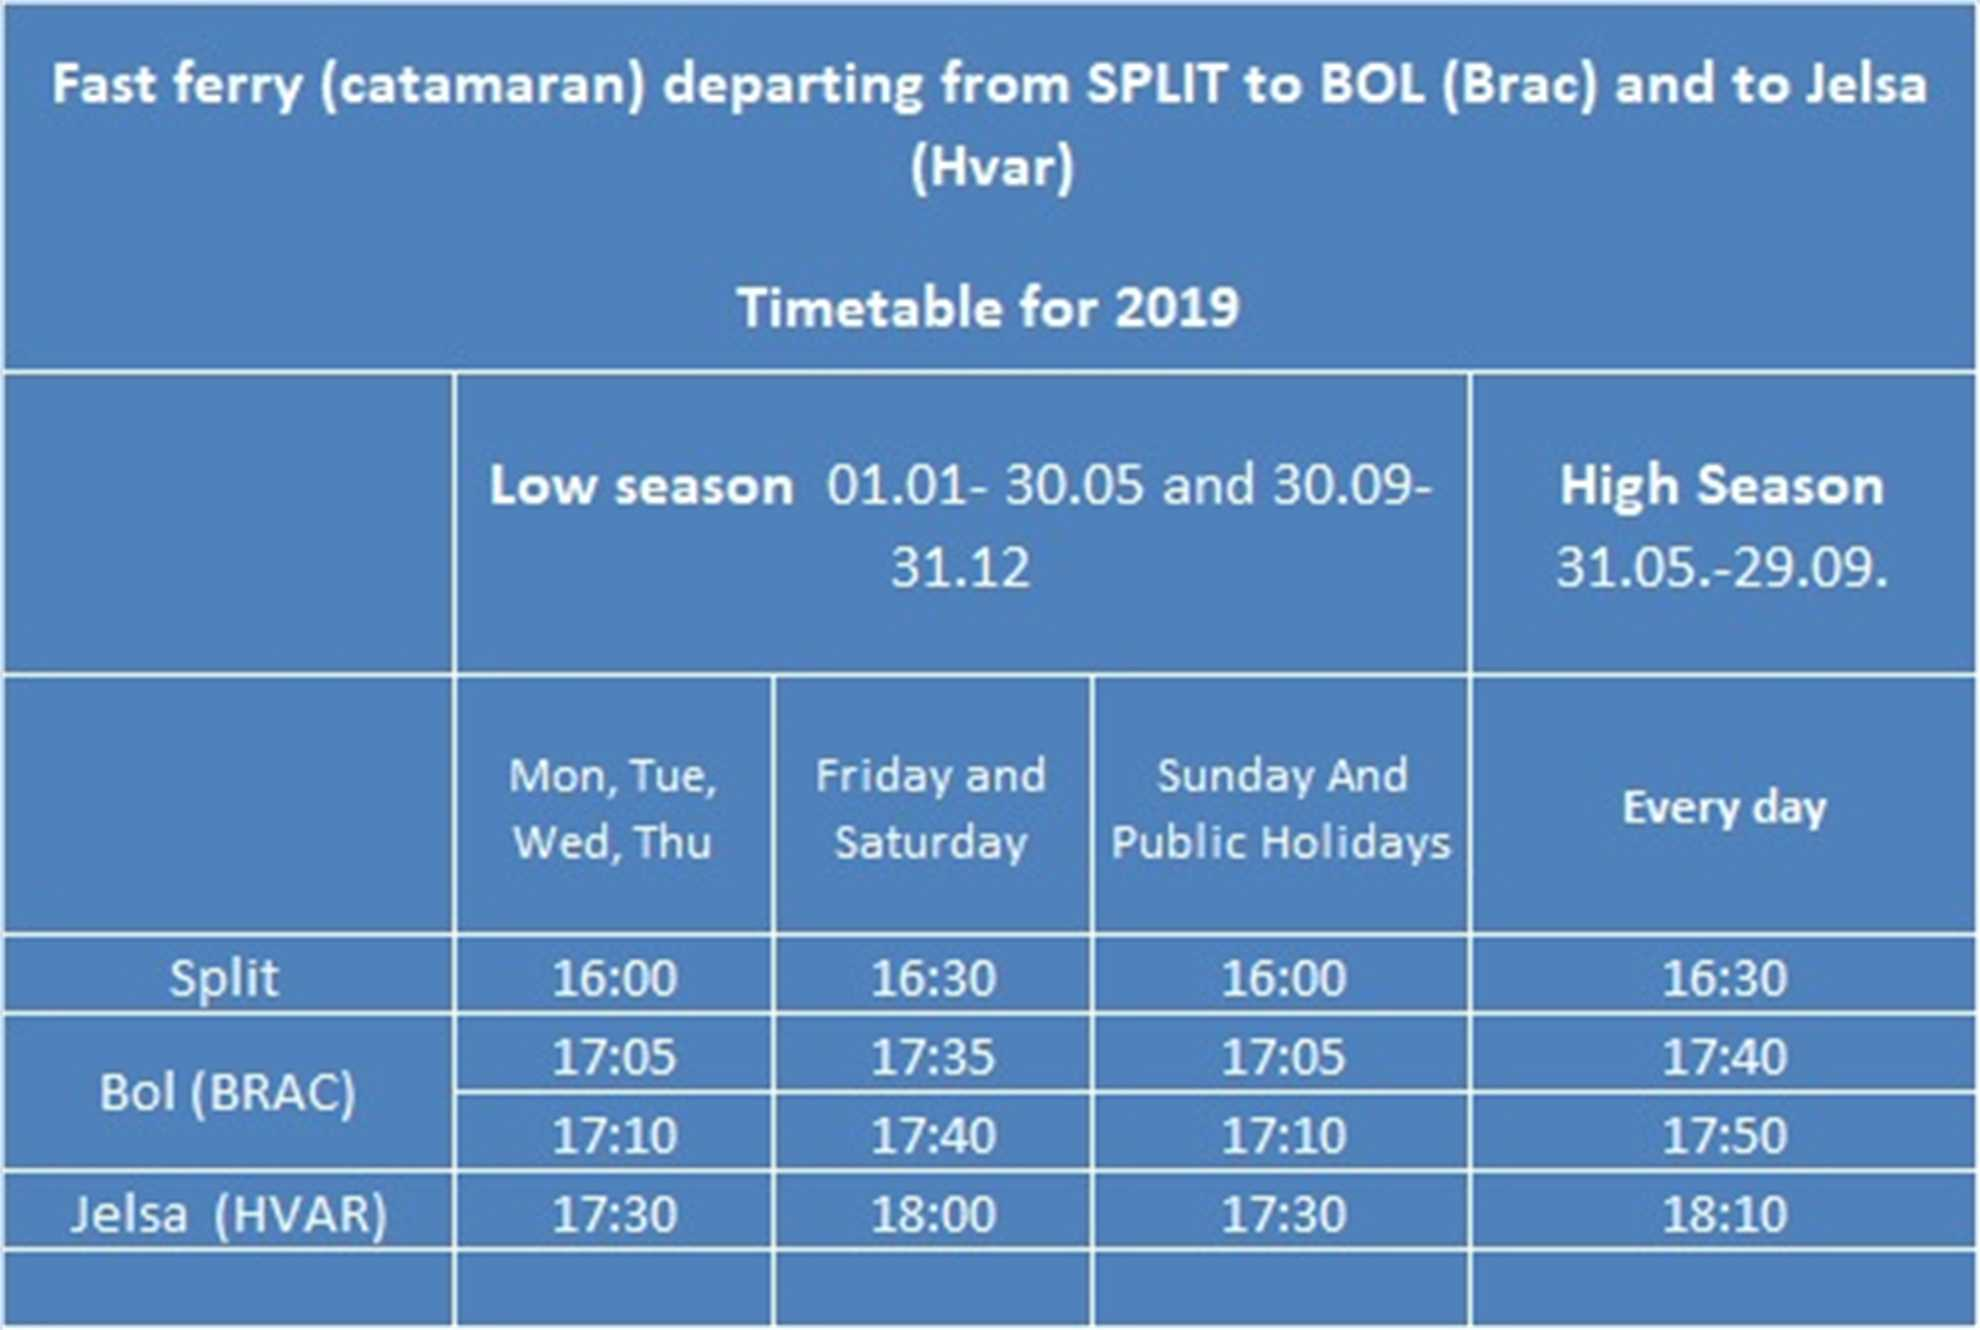 The timetable for the fast ferry from Split to  Bol (Brac) and to Jelsa (Hvar)  in 2019: